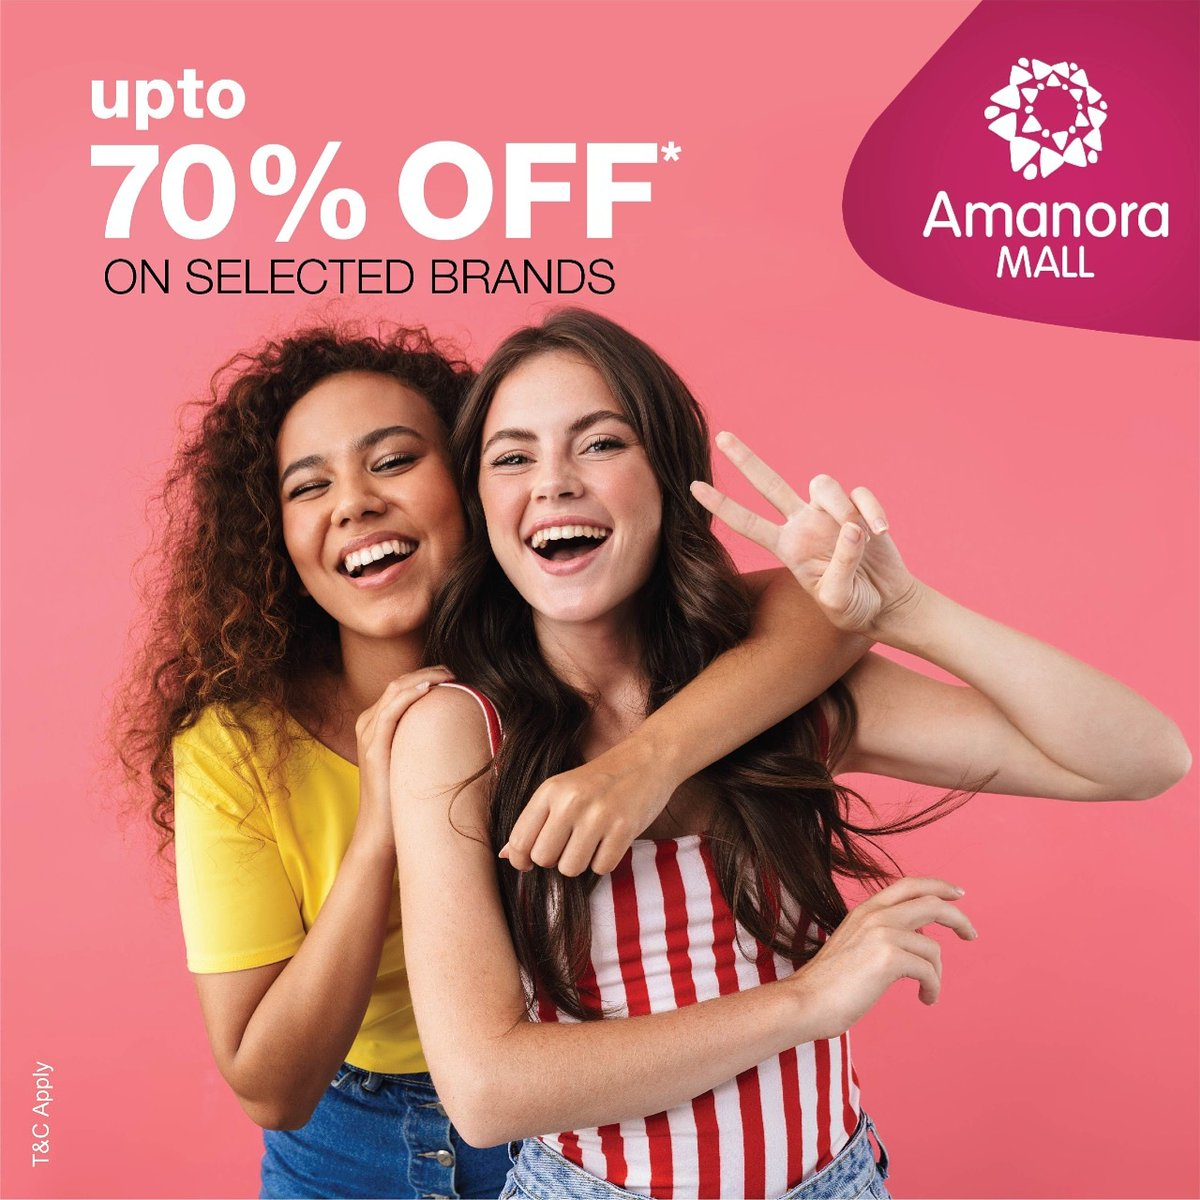 Amp up your style quotient with the greatest fashion sale at @AmanoraMallPune . Upto 70%off on top fashion brands. T&C apply. #Amanoramall #Sale #Eoss #Discount #Fashion #Fashionistas